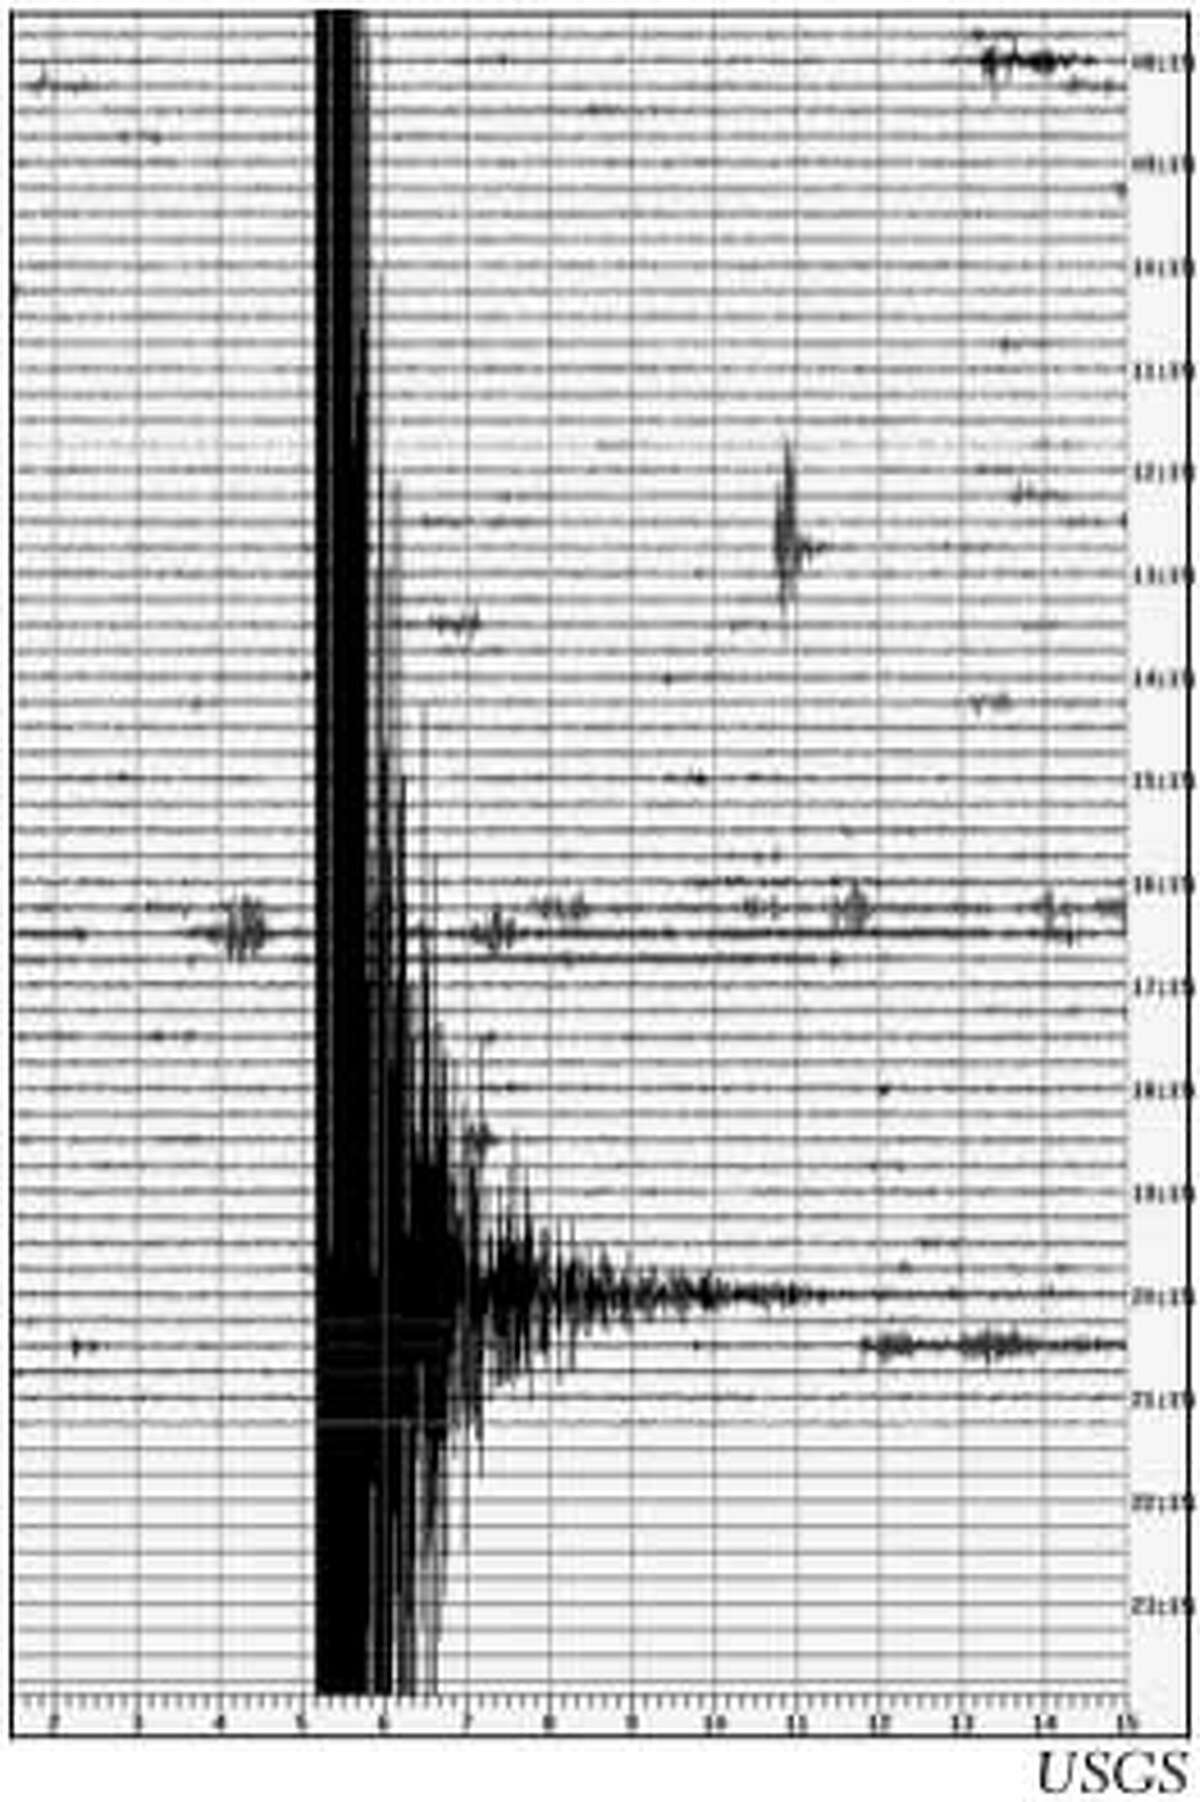 A seismograph shows the quake that hit at 8:04 p.m. Image courtesy of USGS